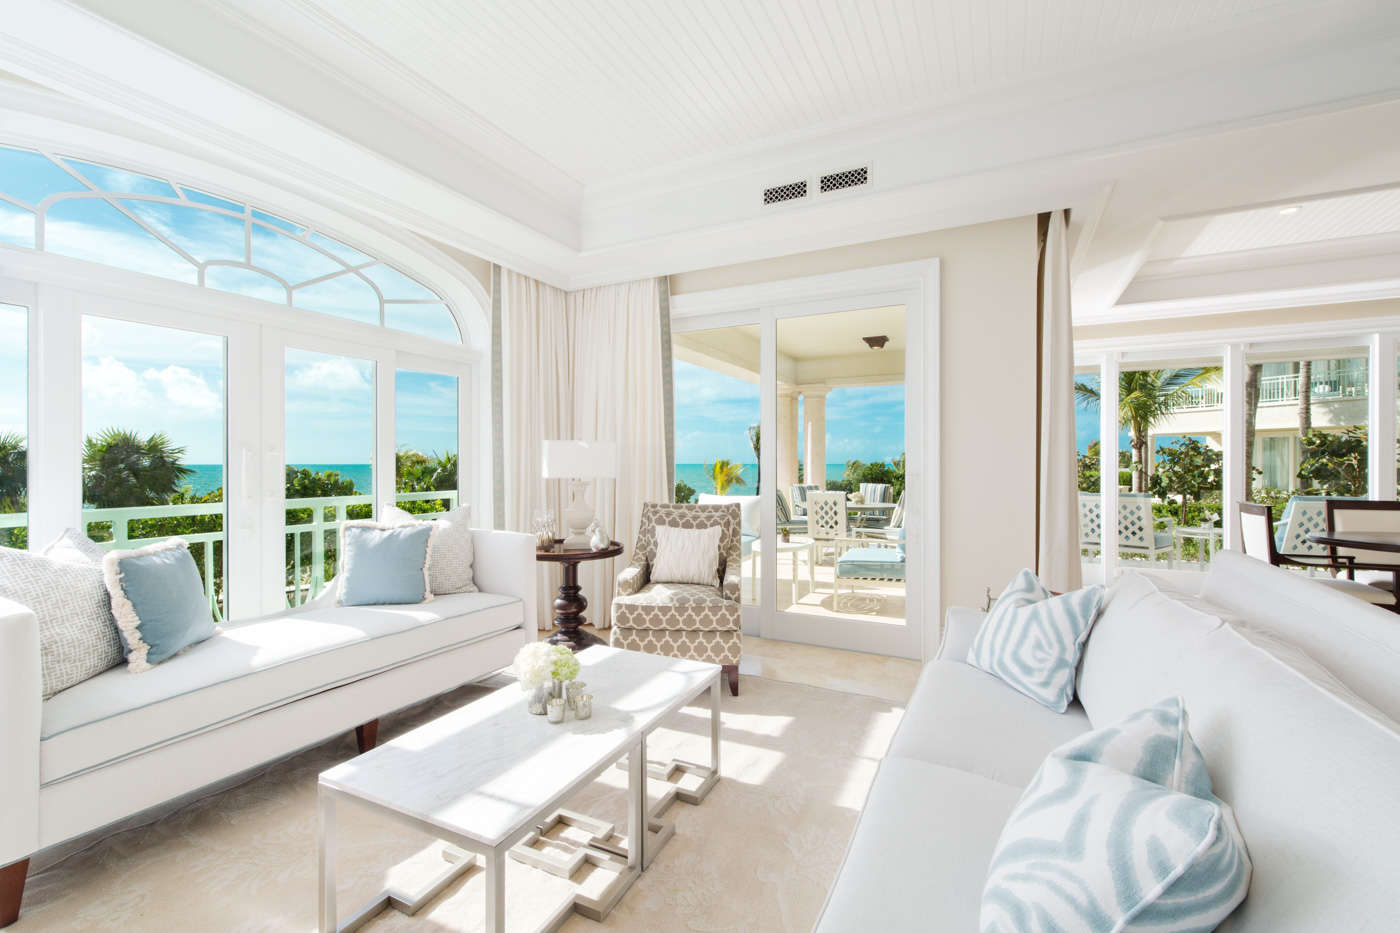 Luxury villa rentals caribbean - Turks and caicos - Providenciales - The shore club turks and caicos - Deluxe Oceanfront 1 BDM - Image 1/8